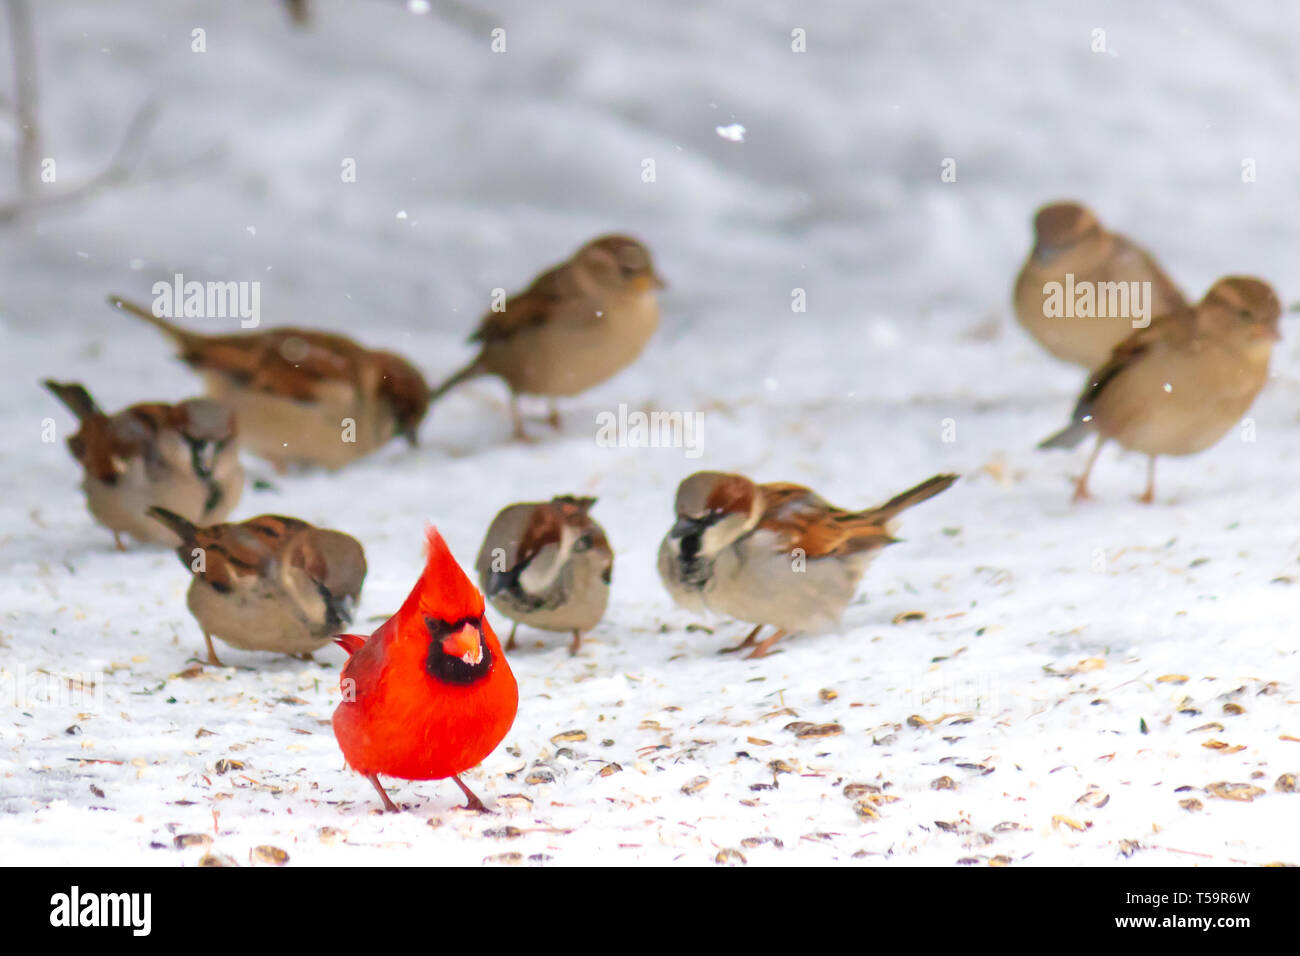 Cardinal leading the swarm of chickadees - Stock Image